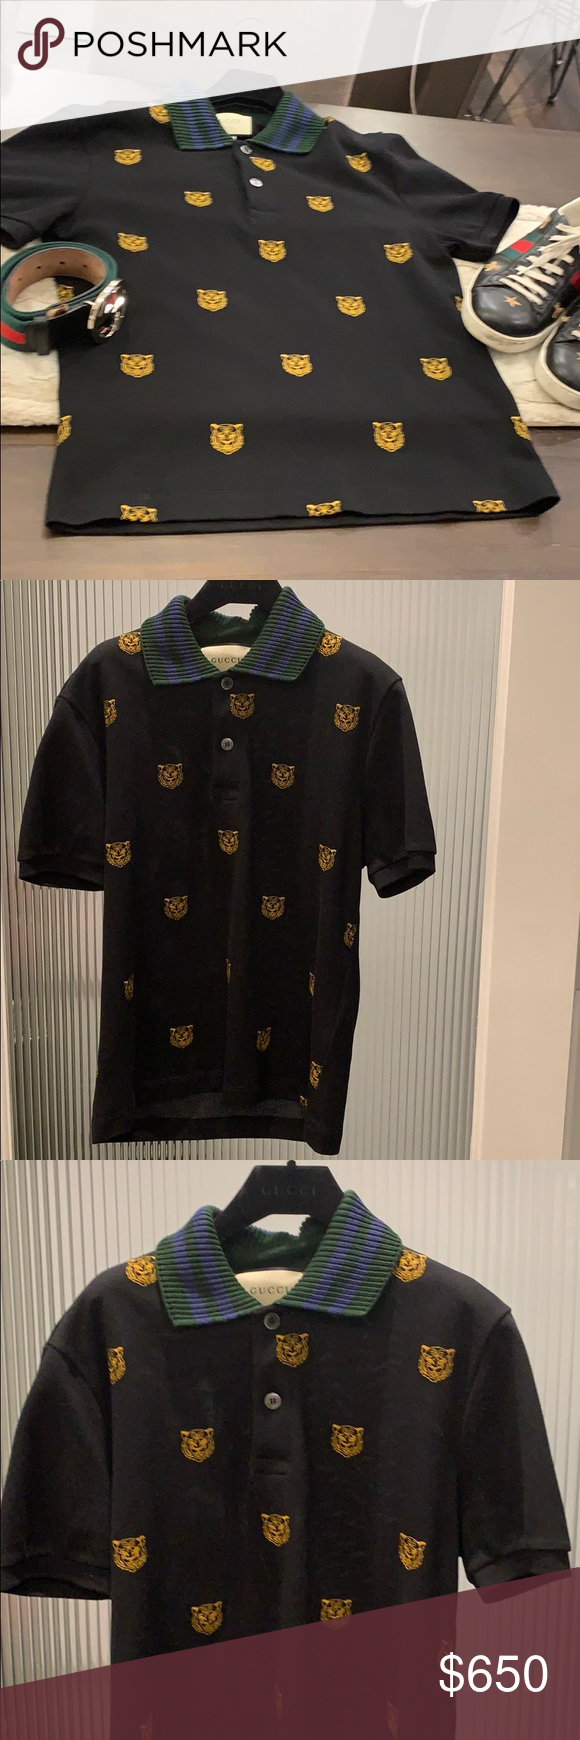 89dc5ef6 Gucci Polo Men's Large with gold Embellishments. Authentic Limited  Edition-Sold Out-Gucci